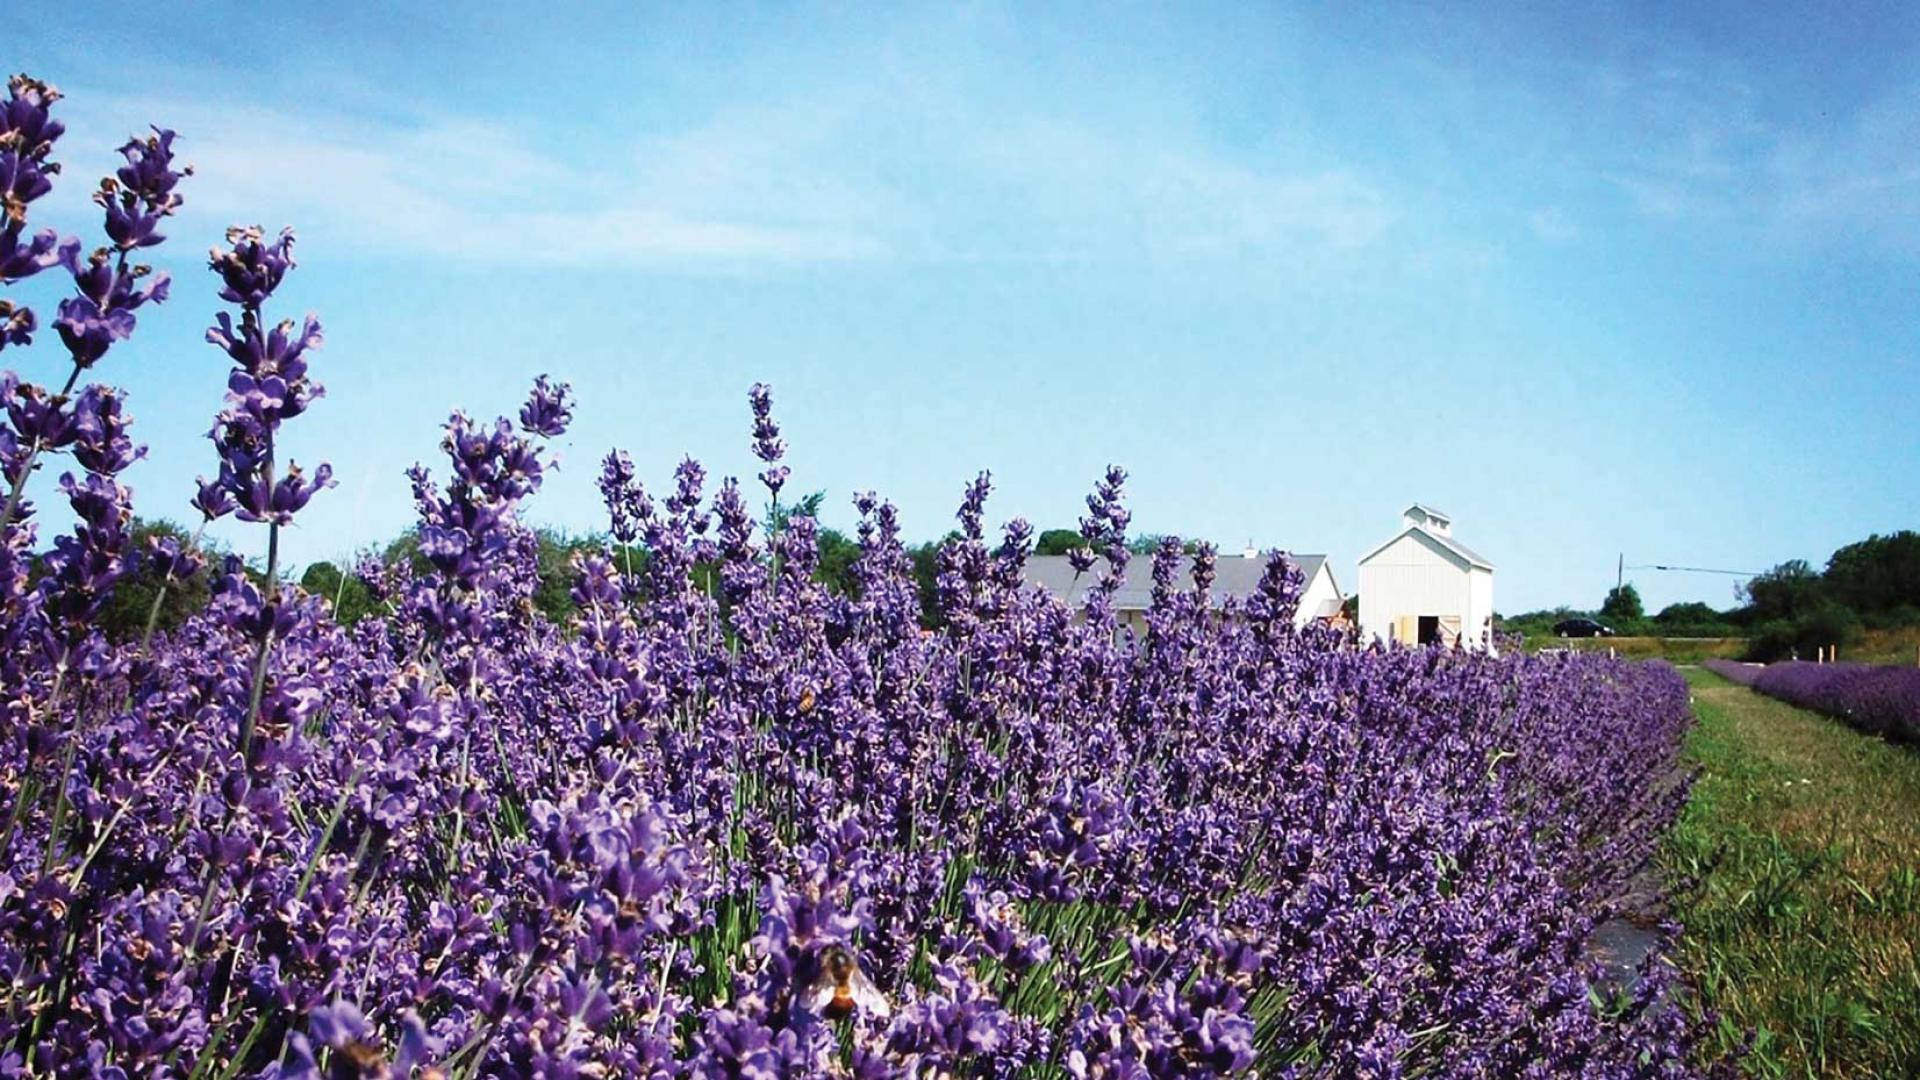 Canadian mead: Lavender fields